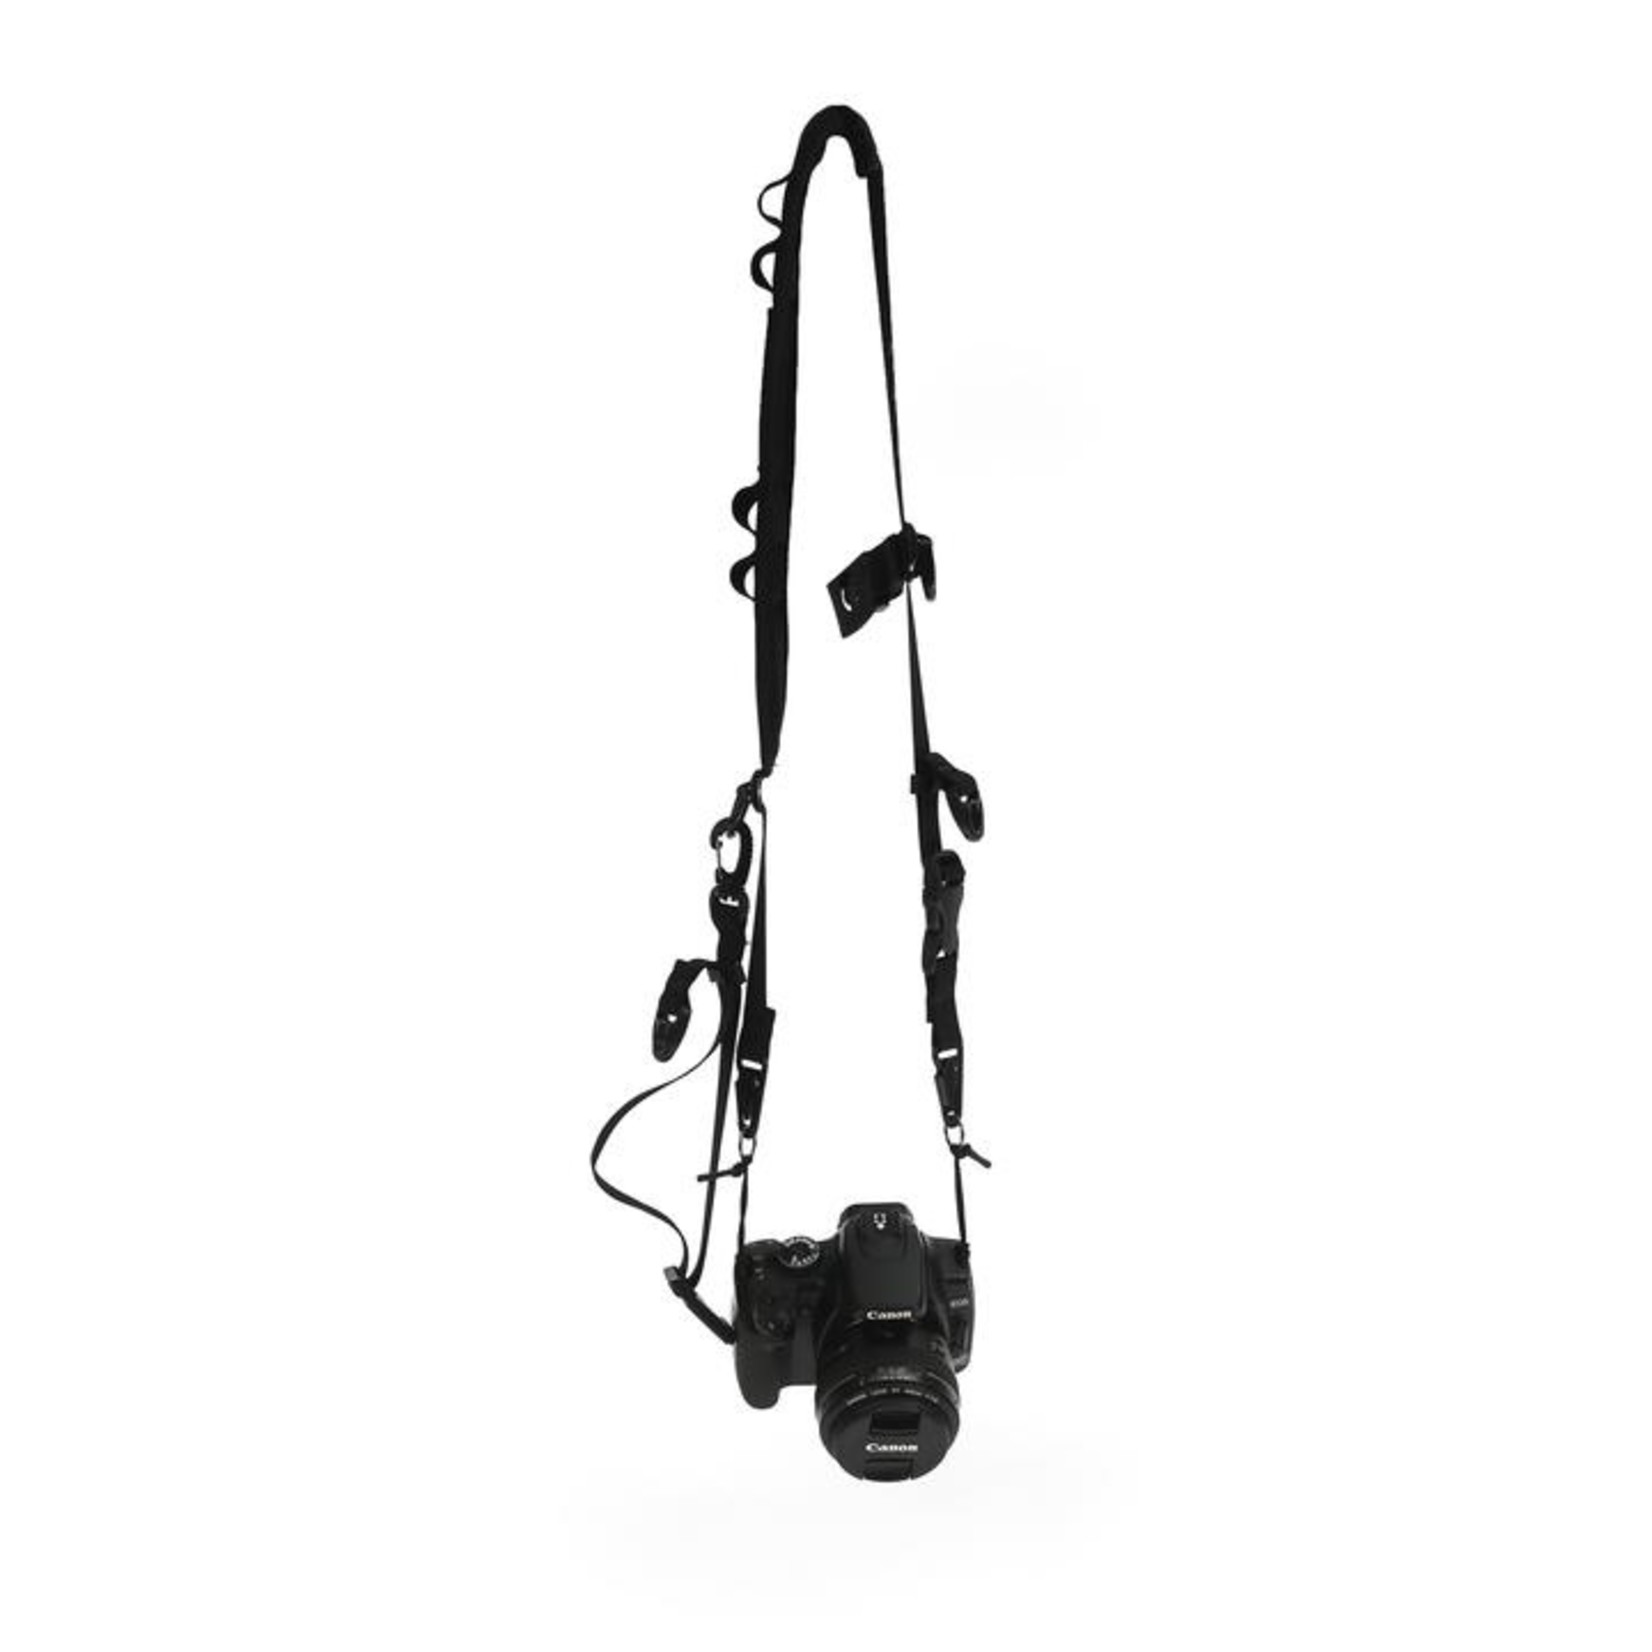 Skin Grows Back Skin Grows Back, 3 Point Cycling Camera Strap